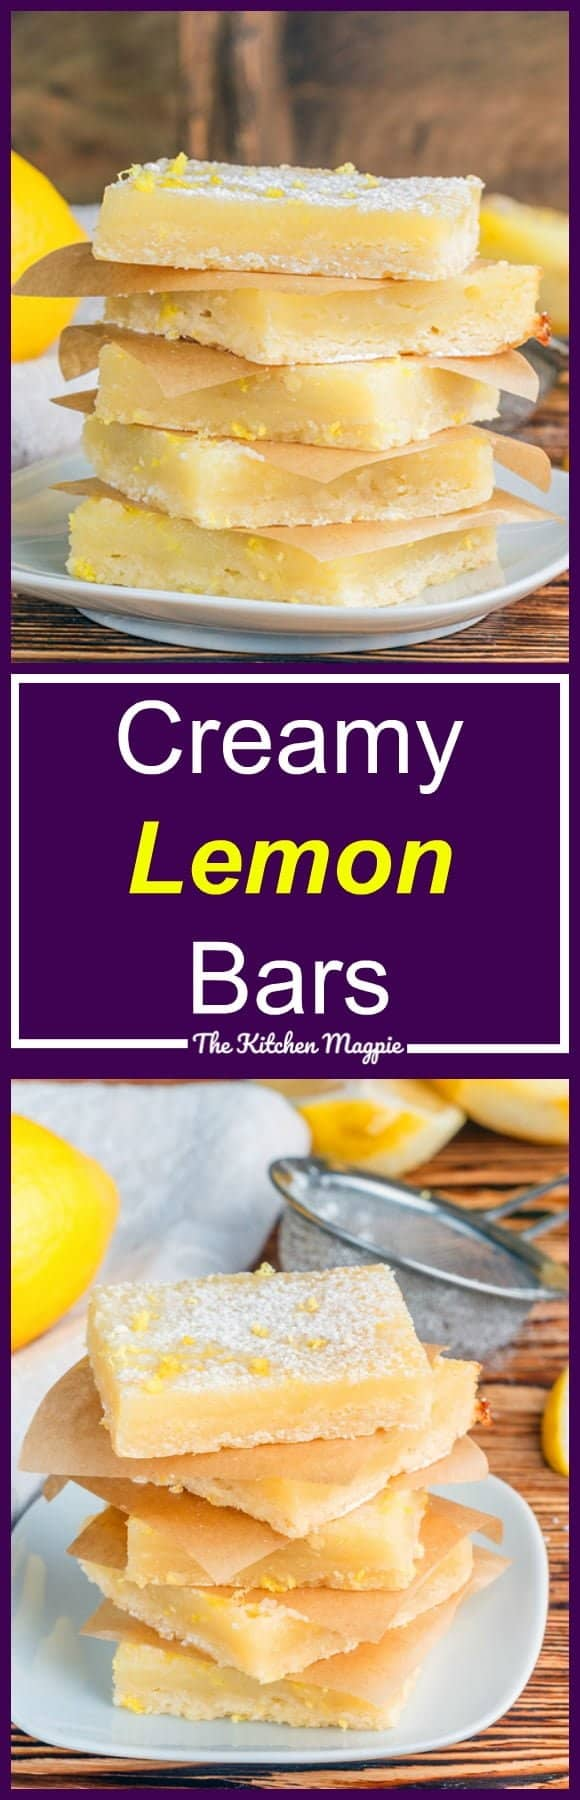 Luscious, creamy lemon bars with a shortbread type base. Are you sold yet? These are perfect for any time of the year - light, lemony and delish! Recipe from @kitchenmagpie #lemon #lemonsquares #desserts #recipe